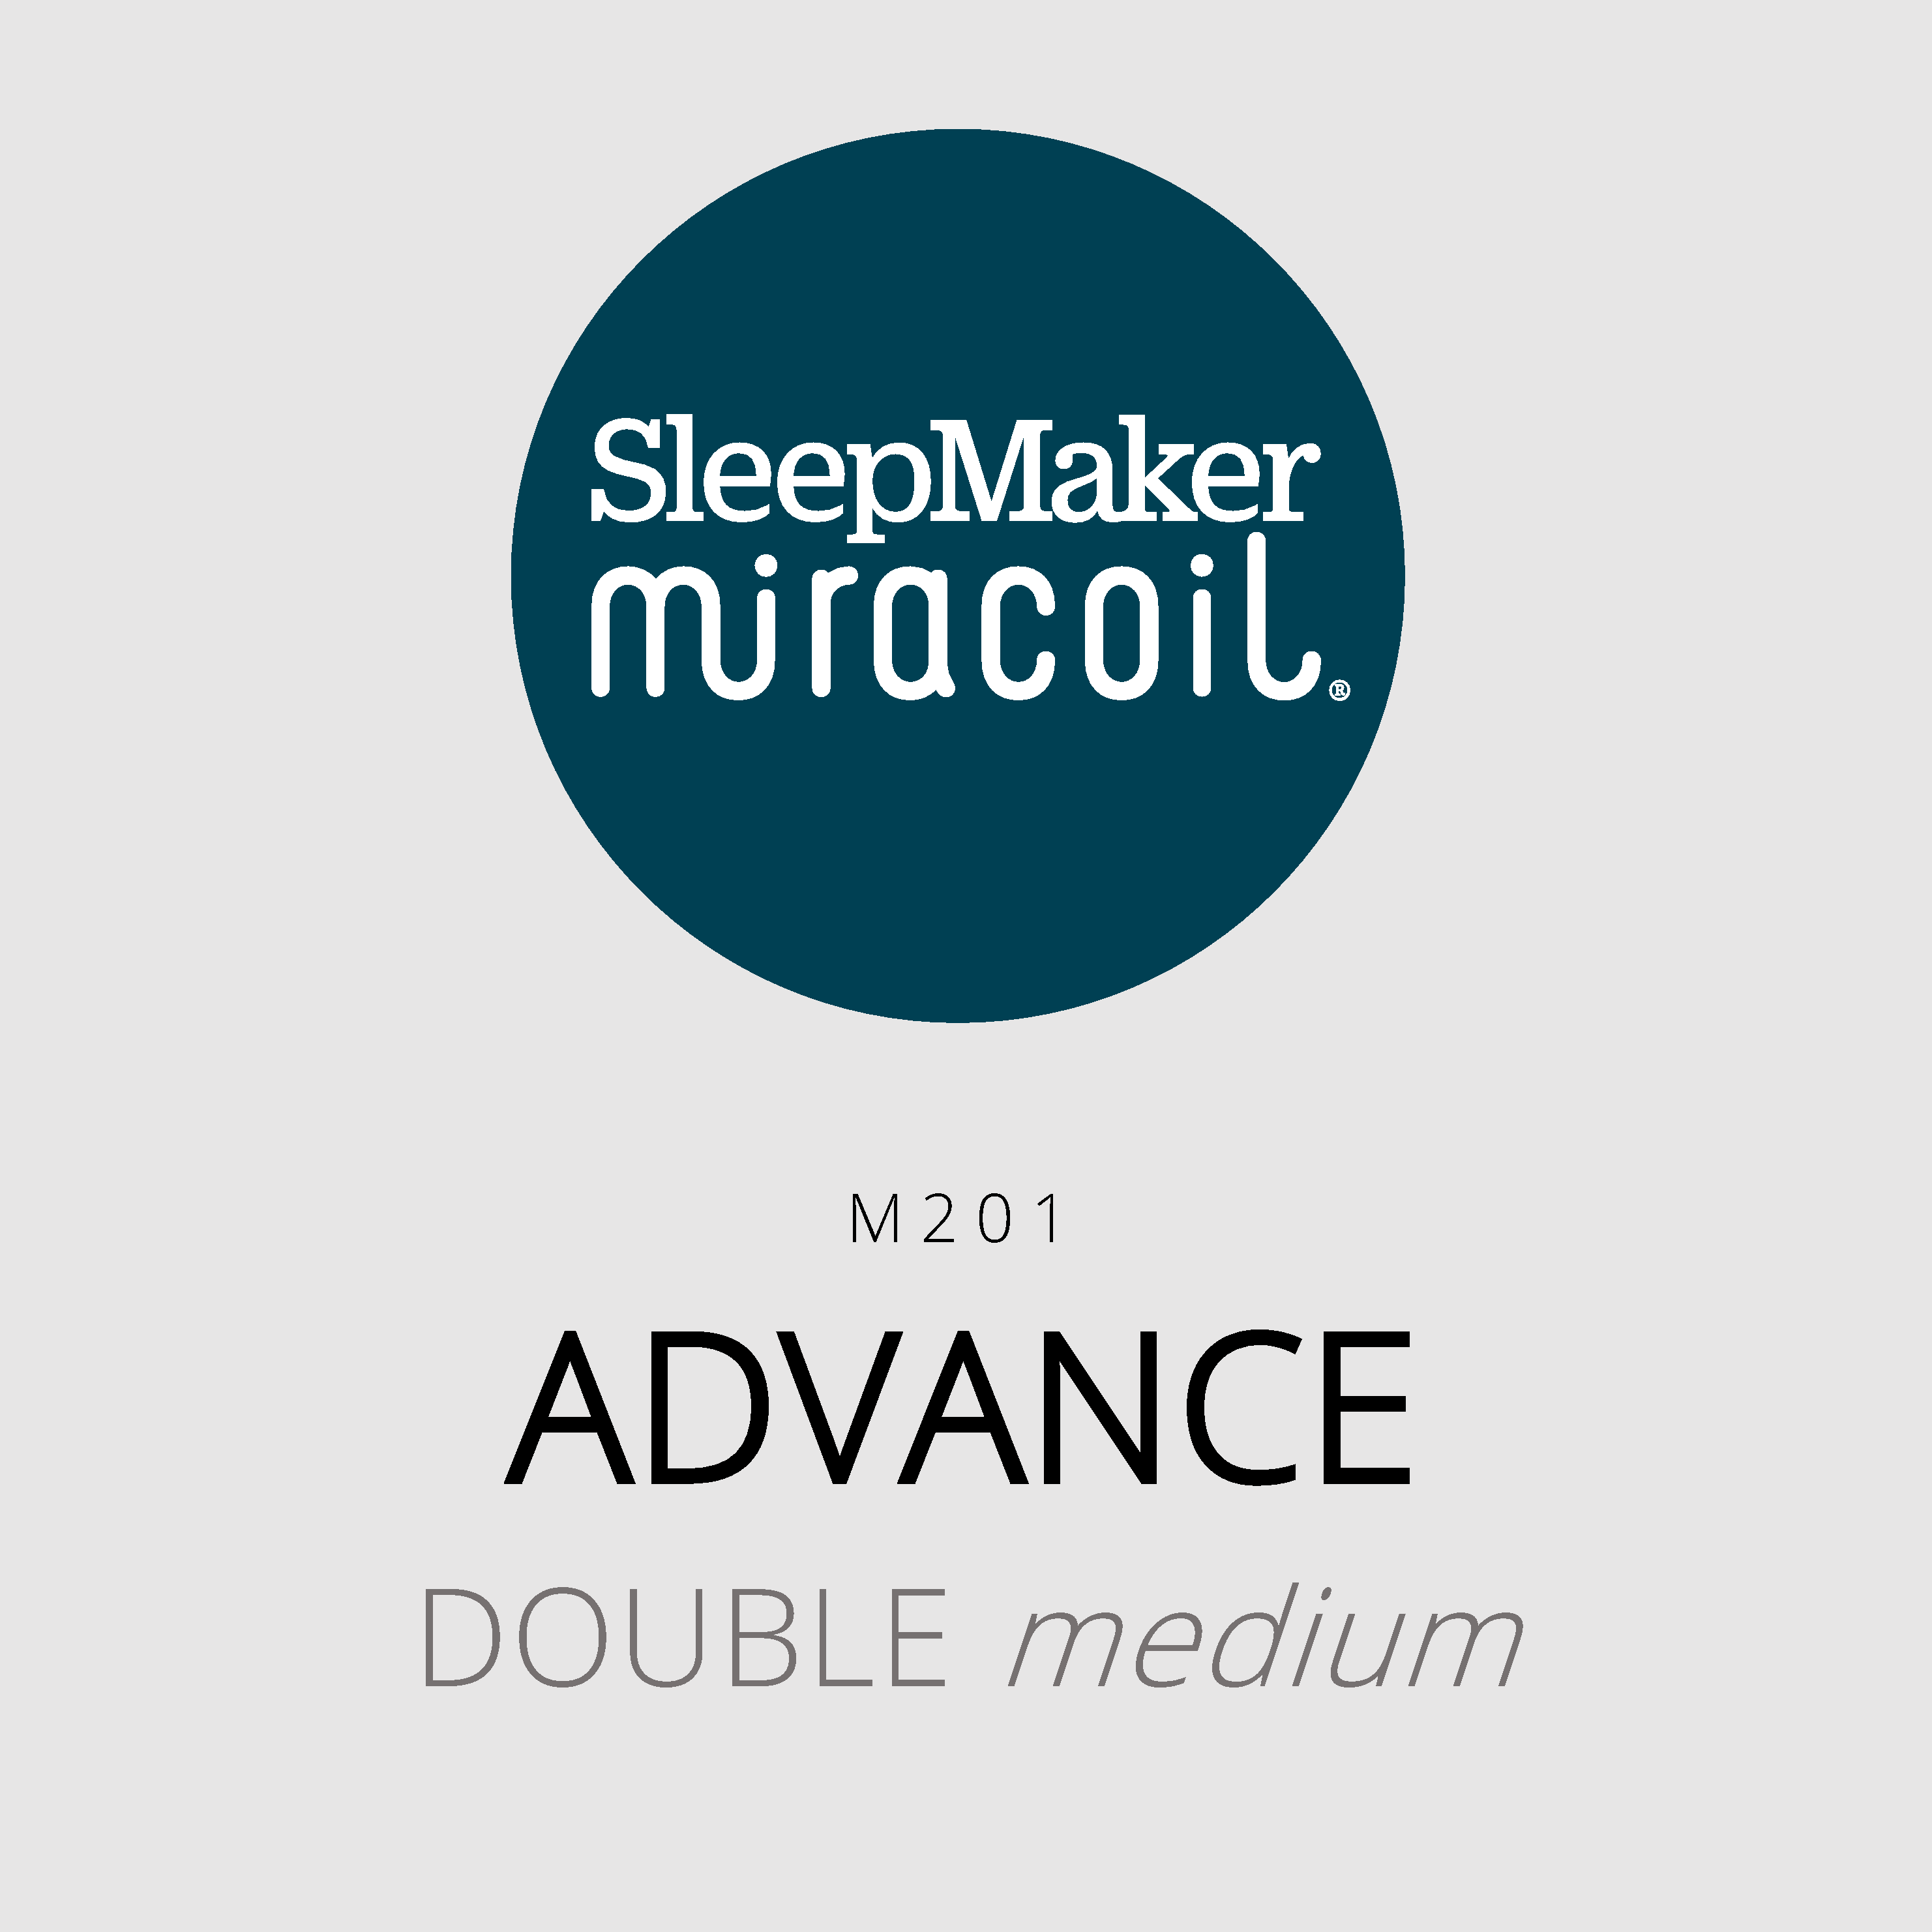 SleepMaker Miracoil – Advance – M201 – Double Medium Mattress